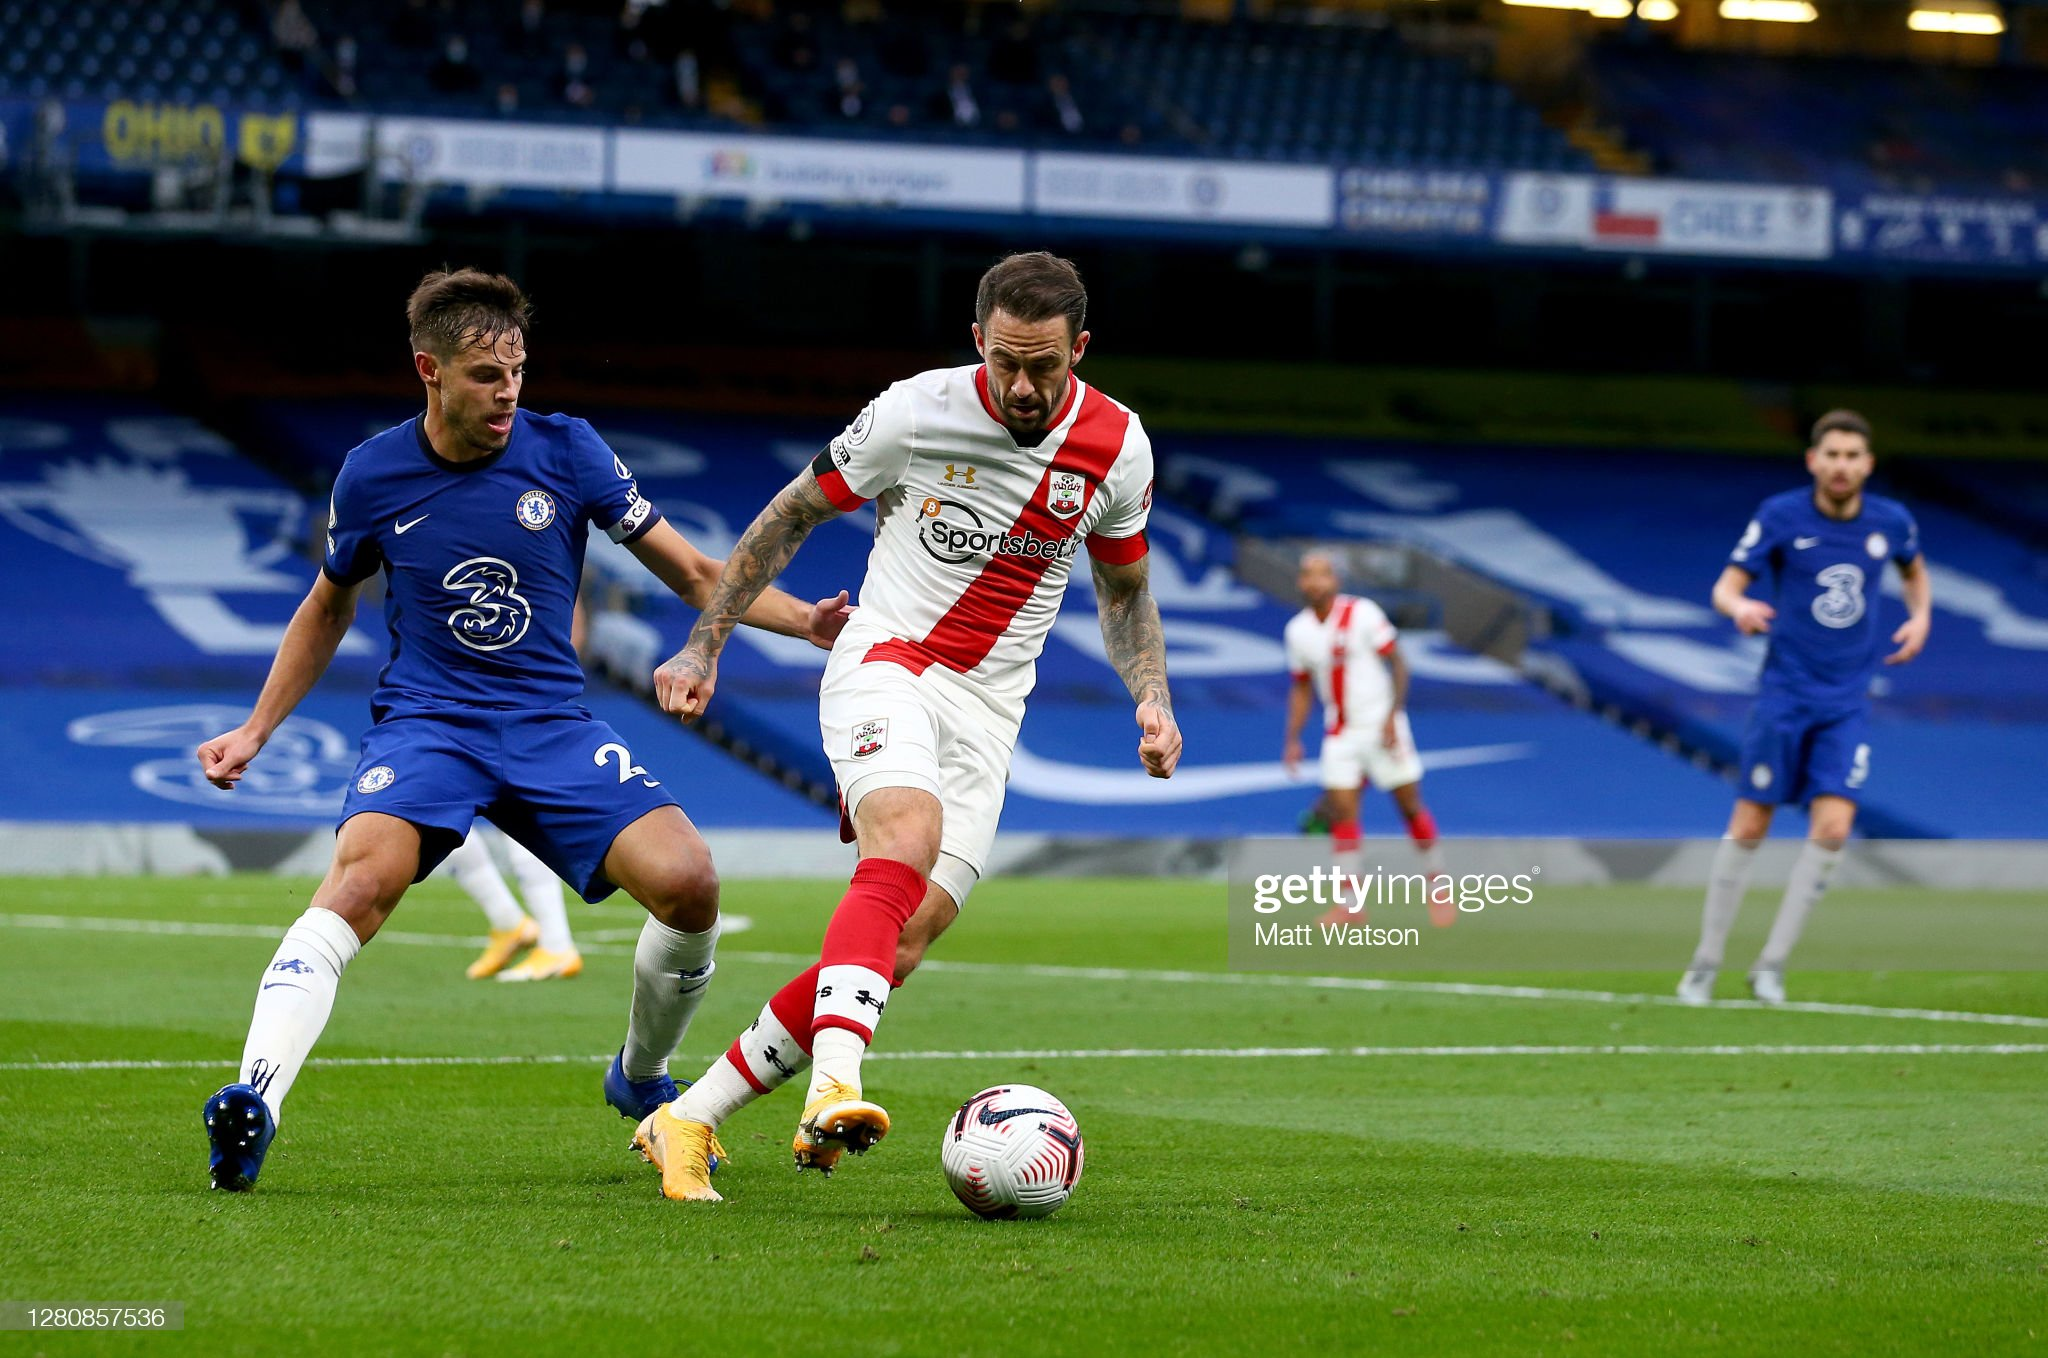 Southampton vs Chelsea Preview, prediction and odds